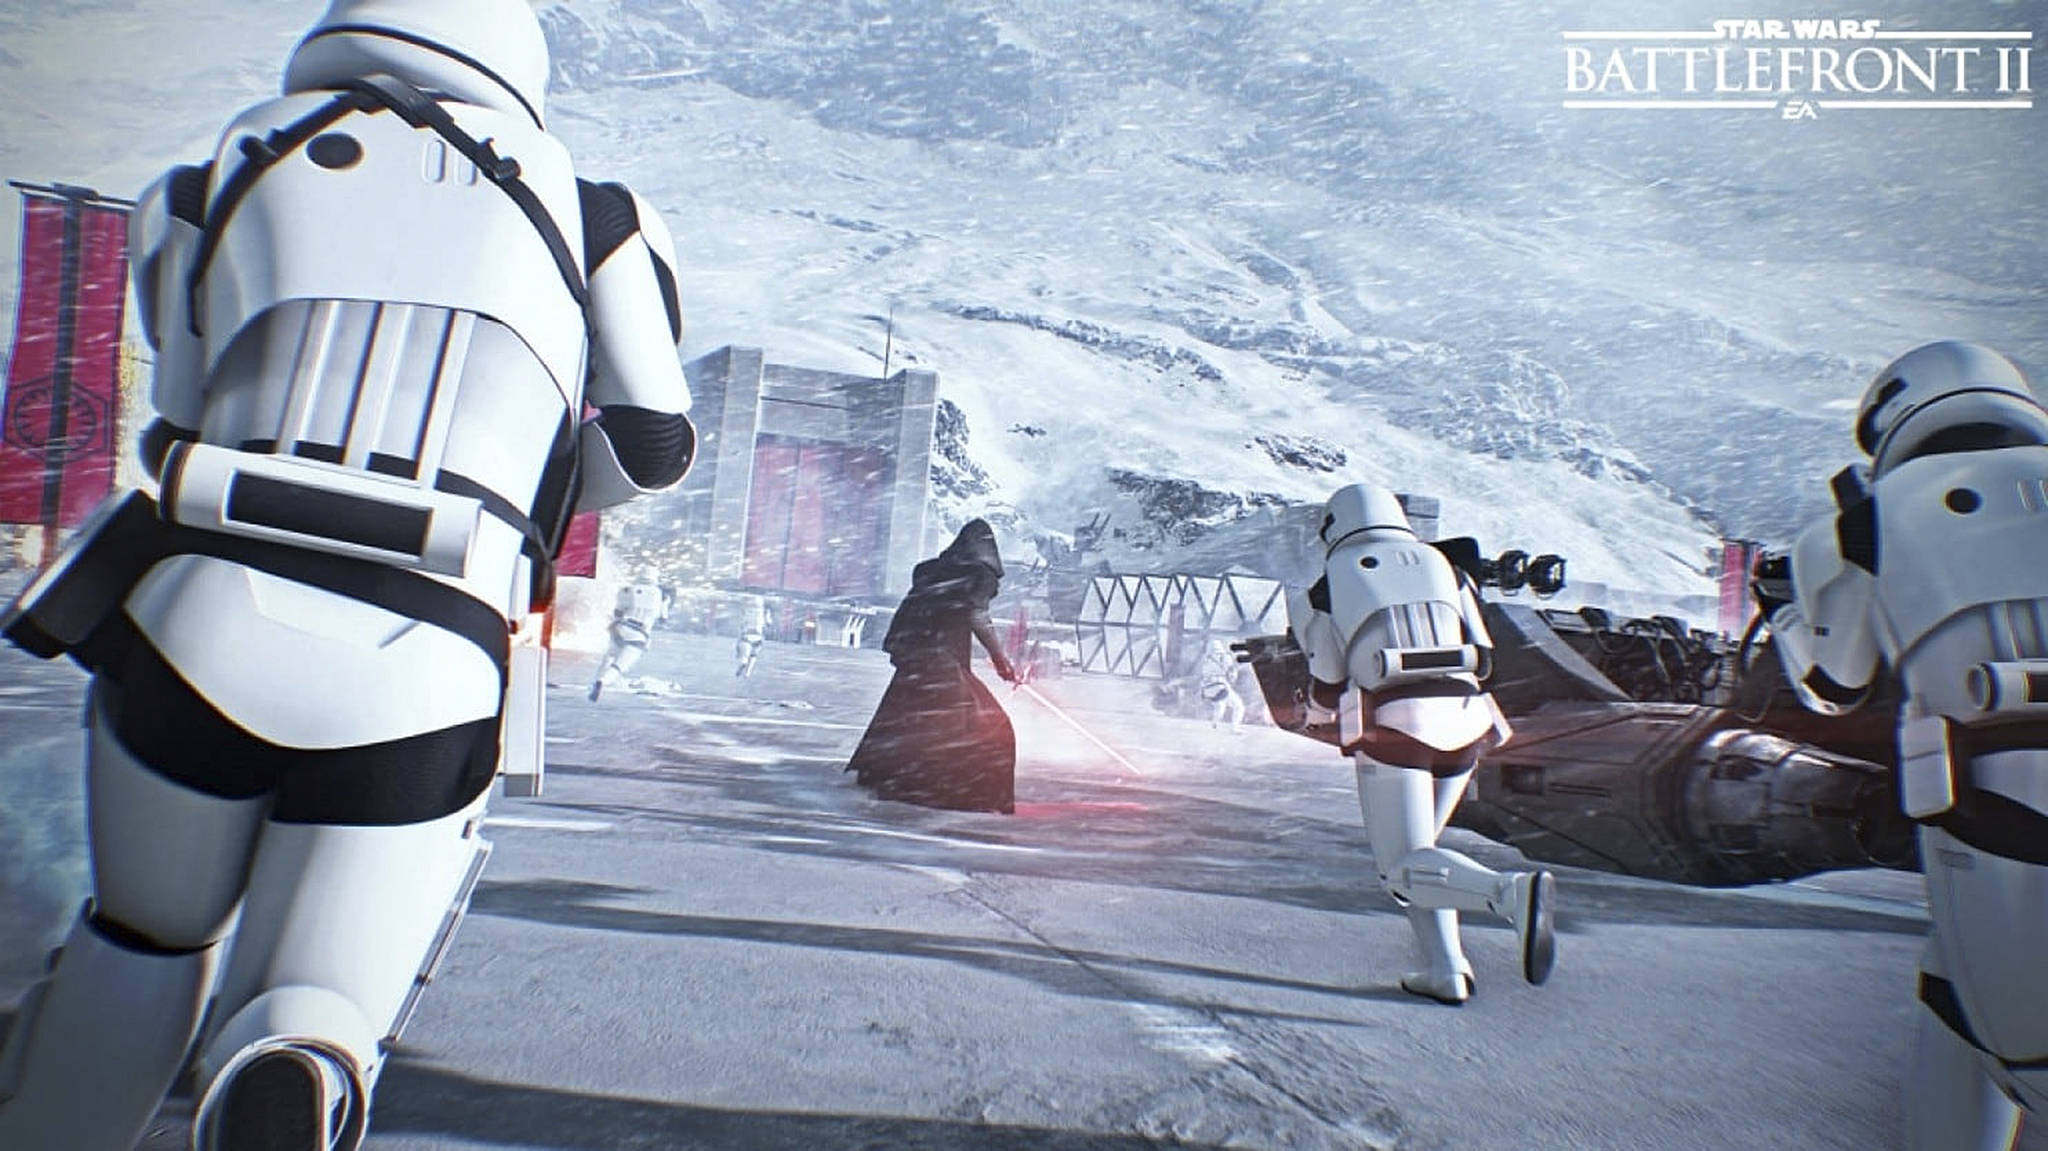 """Kylo Ren and stormtroopers enter the fight in this image from """"Star Wars: Battlefront II."""" MUST CREDIT: EA"""